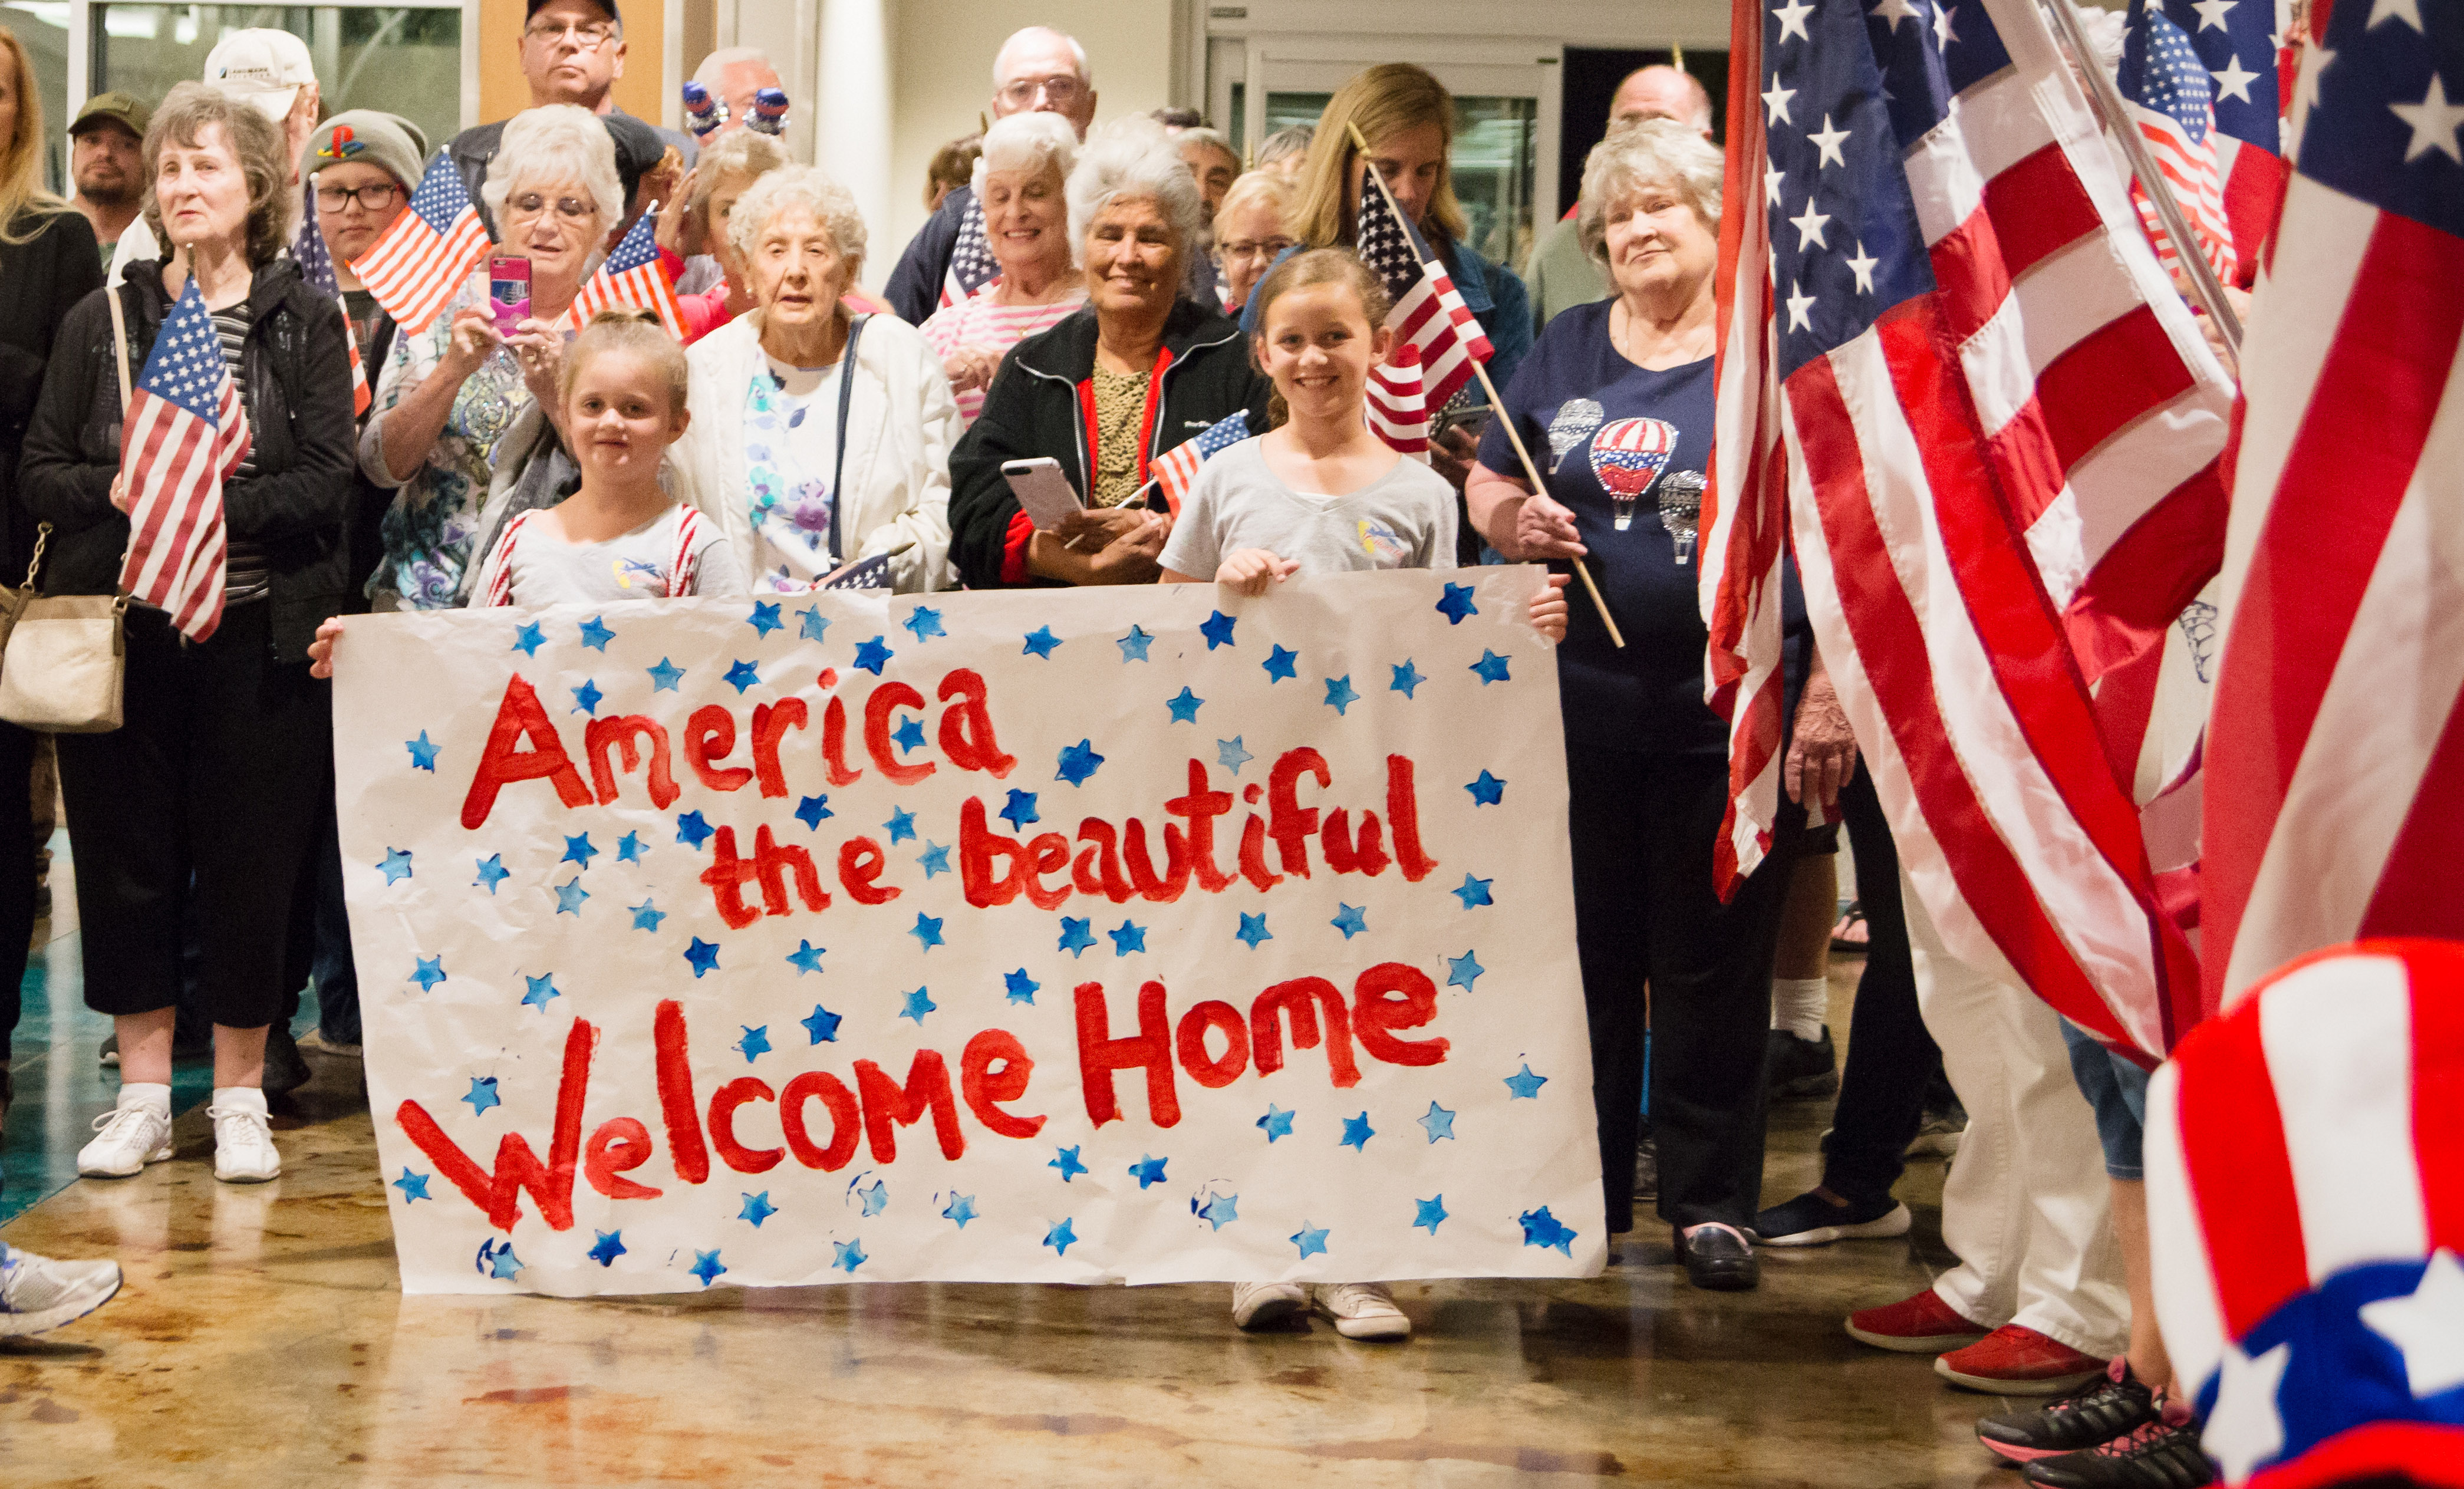 America the Beautiful Welcome Home banner at the airport